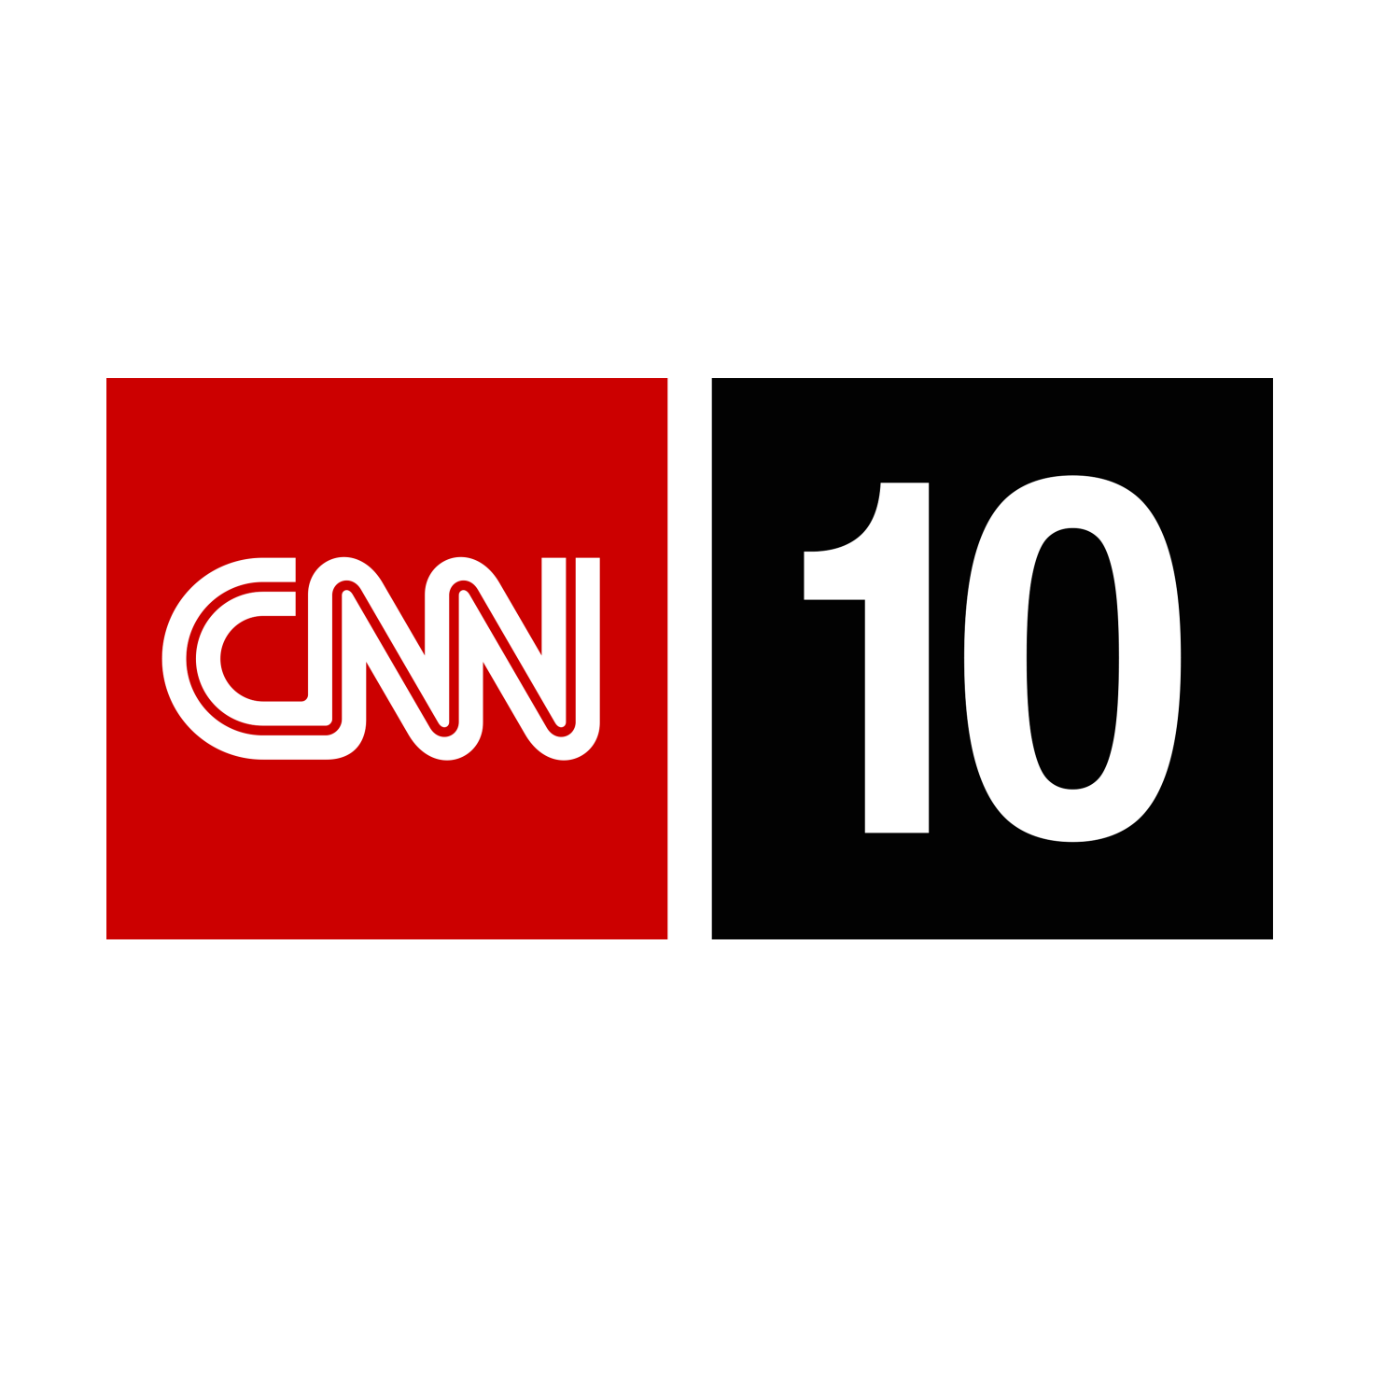 CNN Student News - January 24, 2013